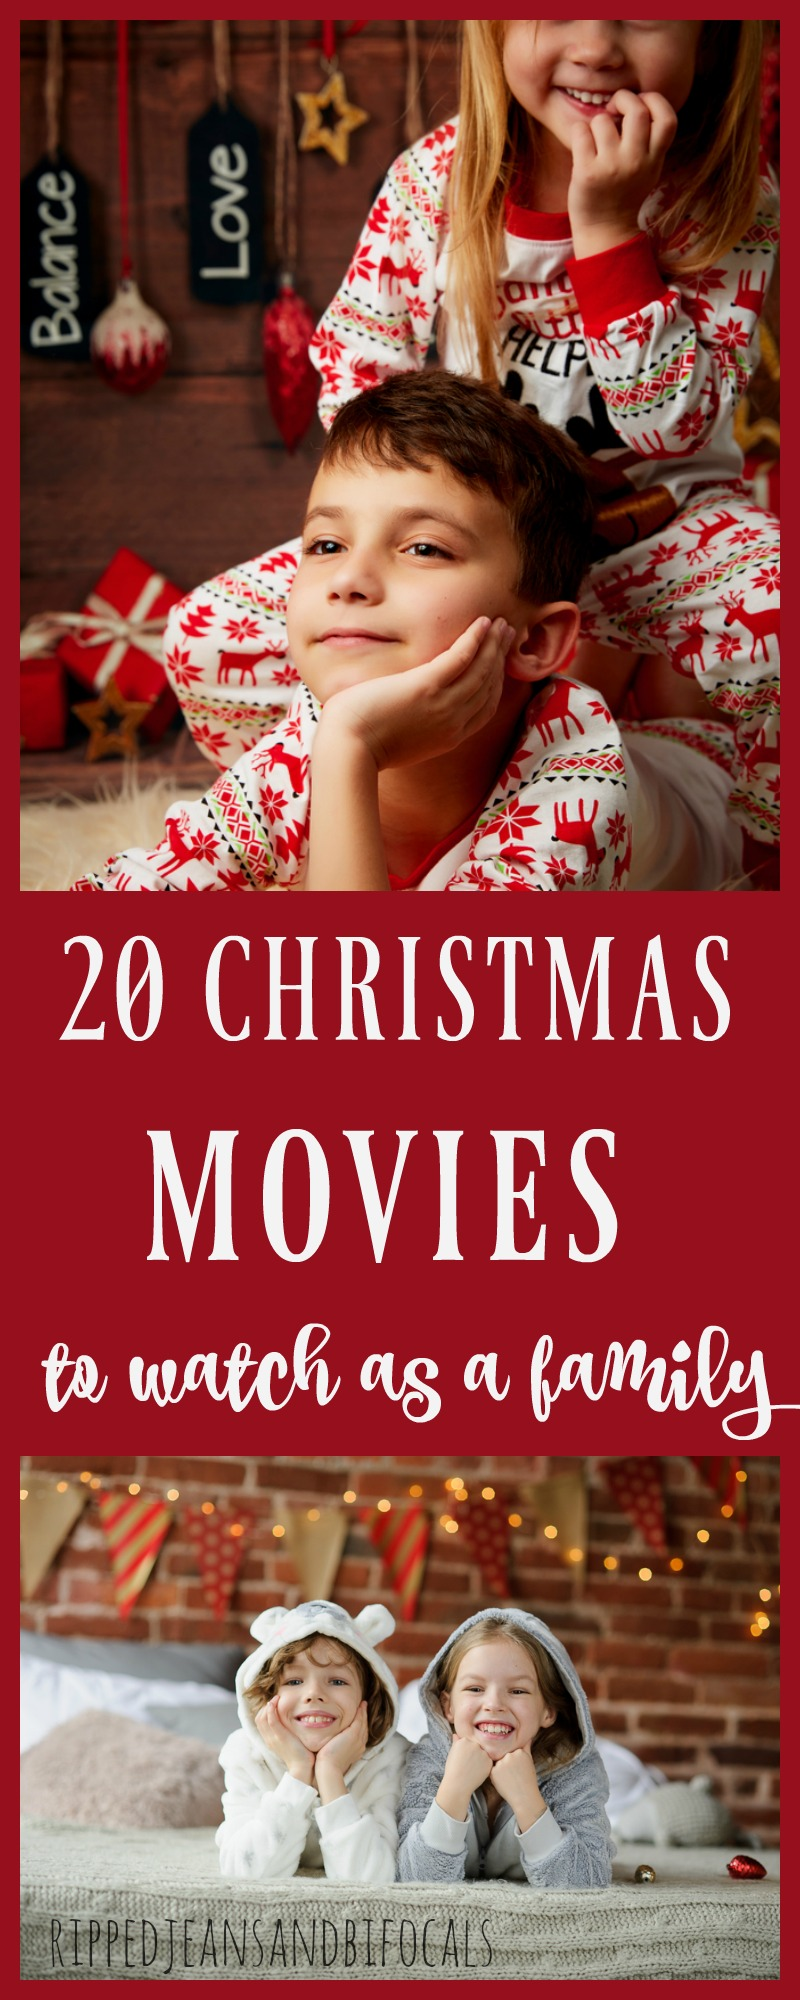 20 Christmas Movies to Watch with your Family